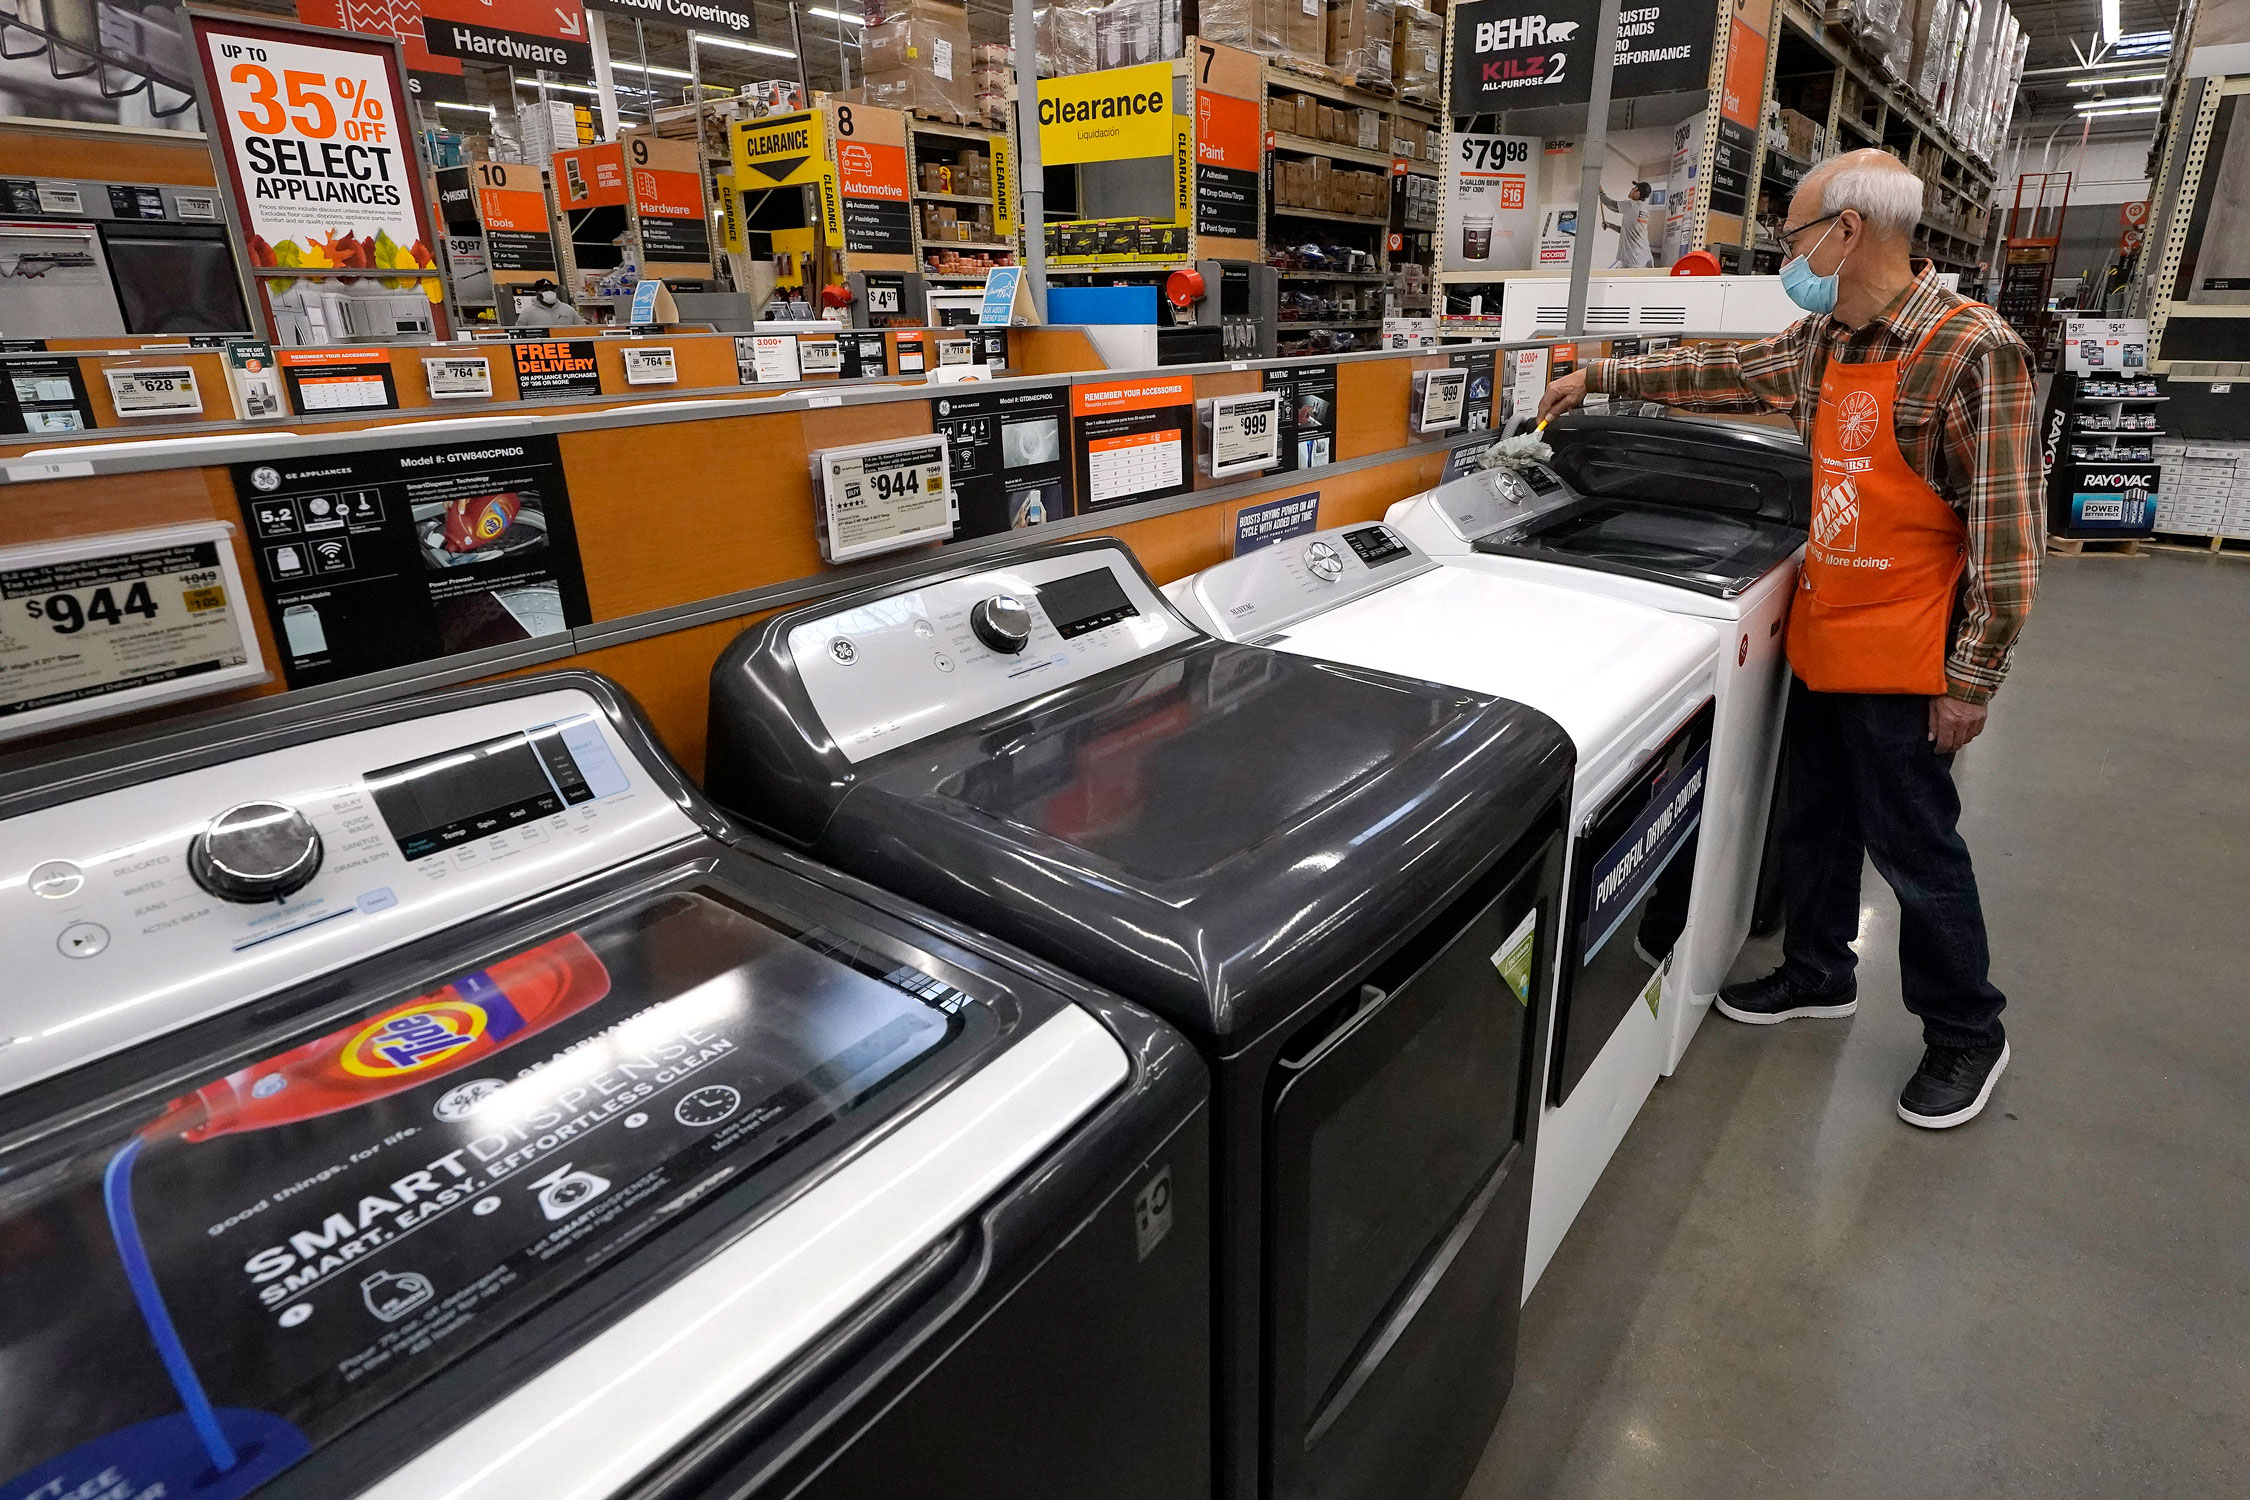 In this photo, taken October 29, 2020, an employee wears a mask indoors while dusting washers on a display, at a Home Depot location, in Boston.